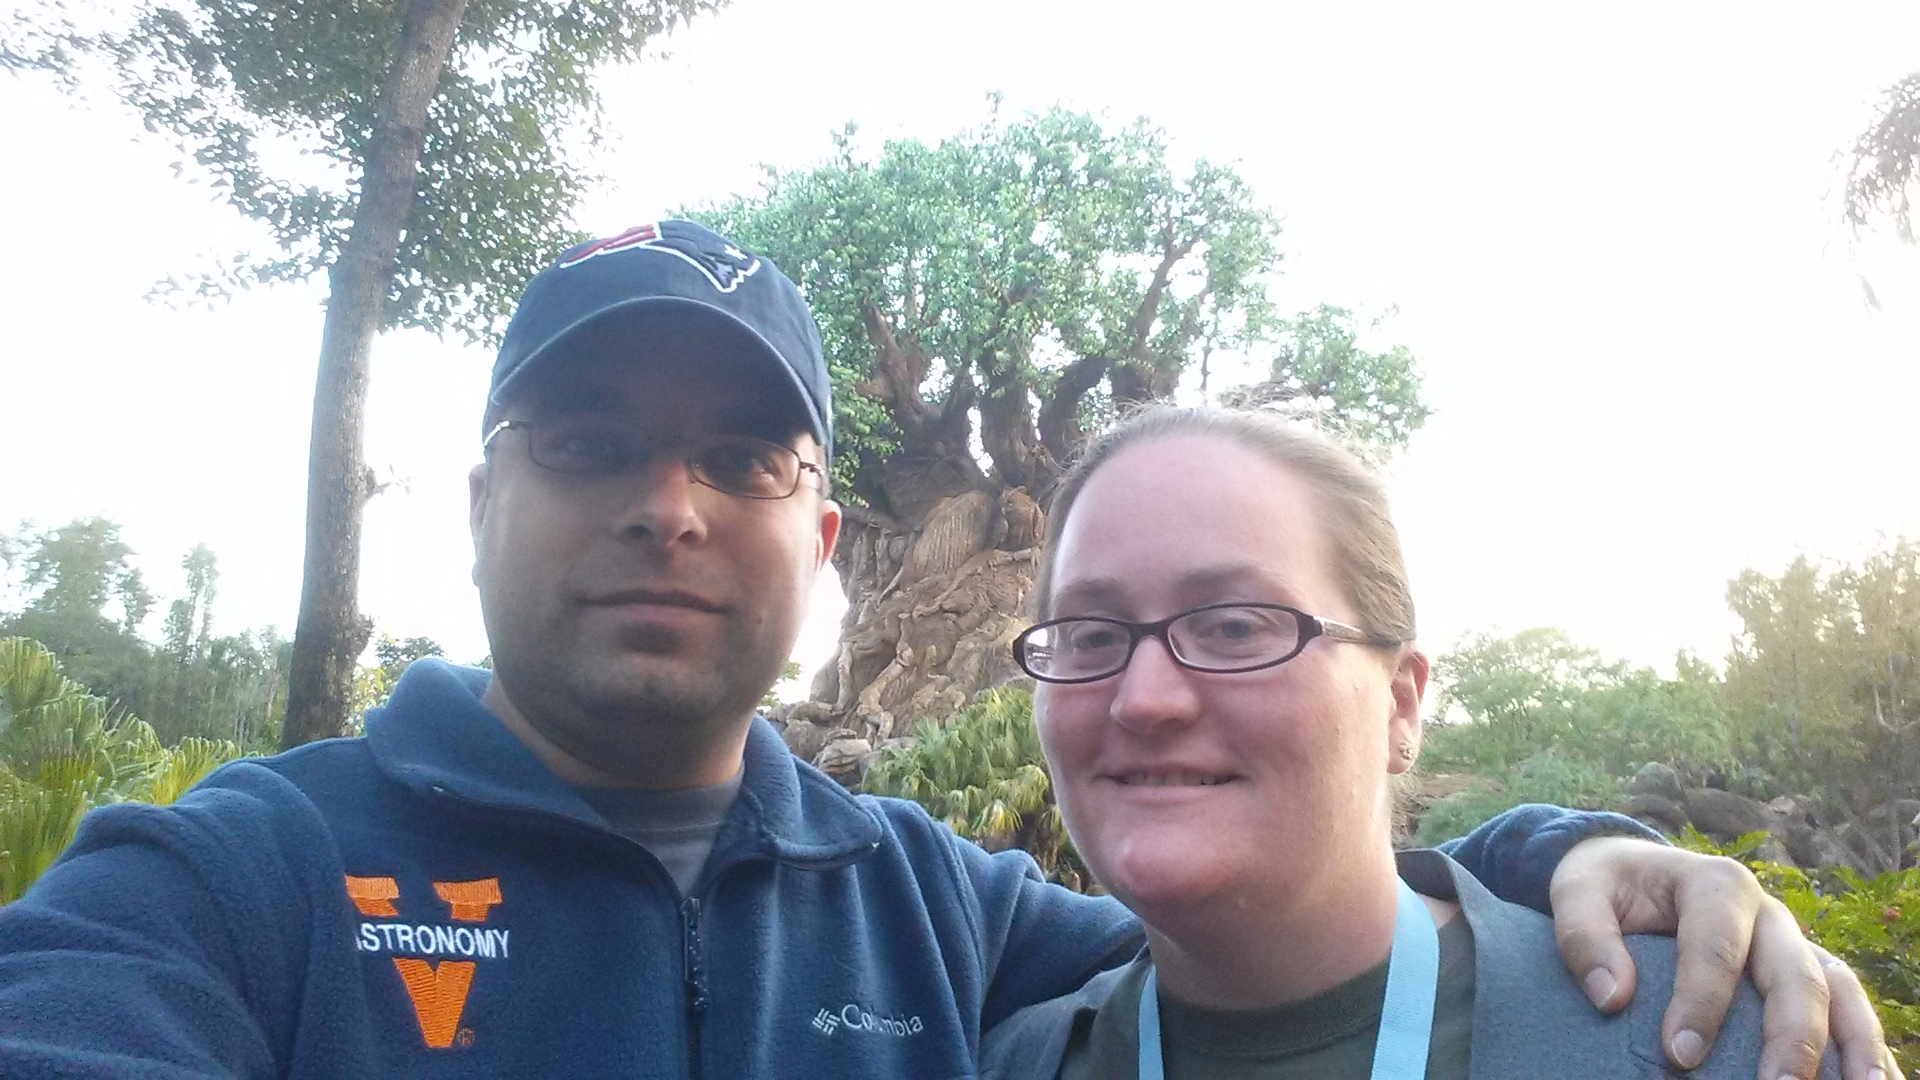 Tree of Life Selfie